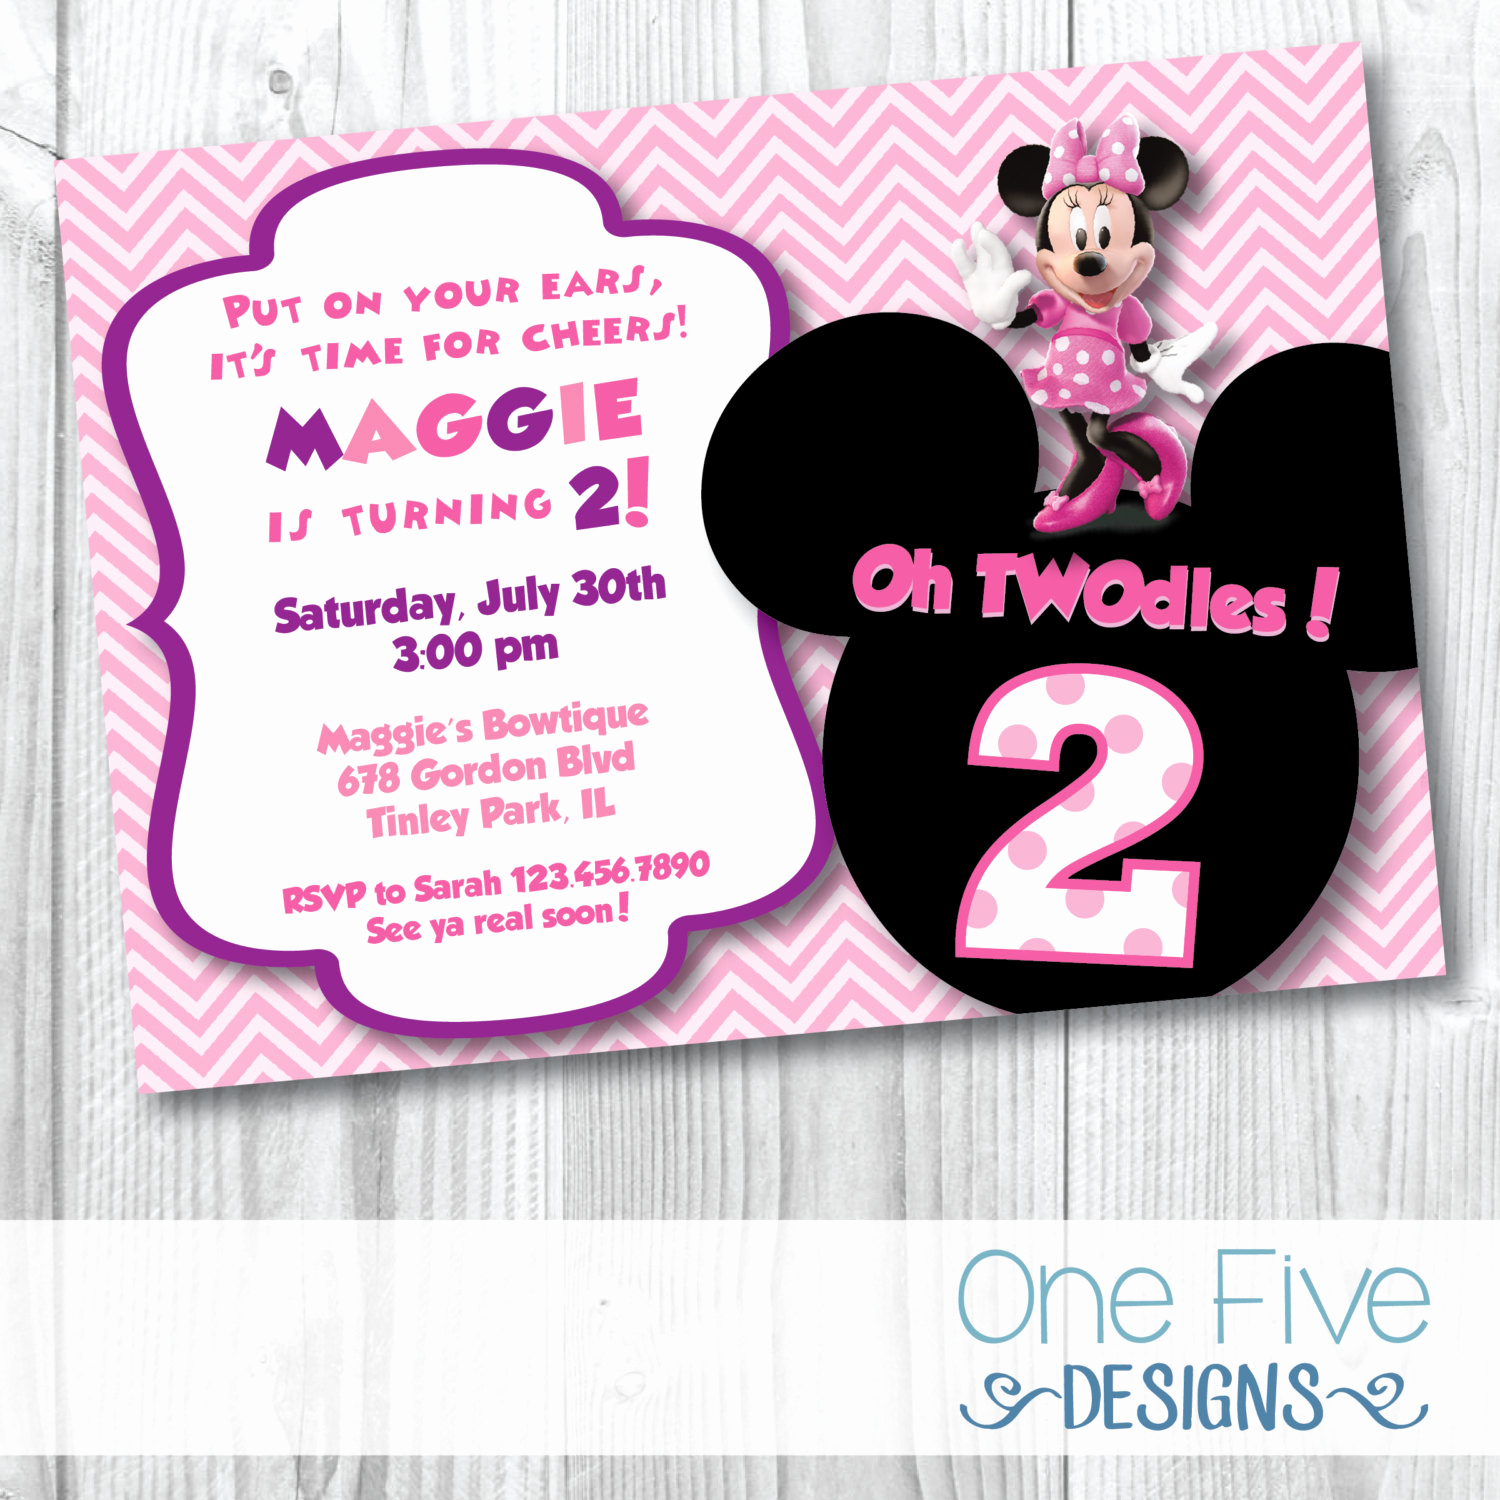 Minnie Mouse Birthday Invitation Wording Elegant Minnie Mouse Oh Twodles Birthday Party Invitation